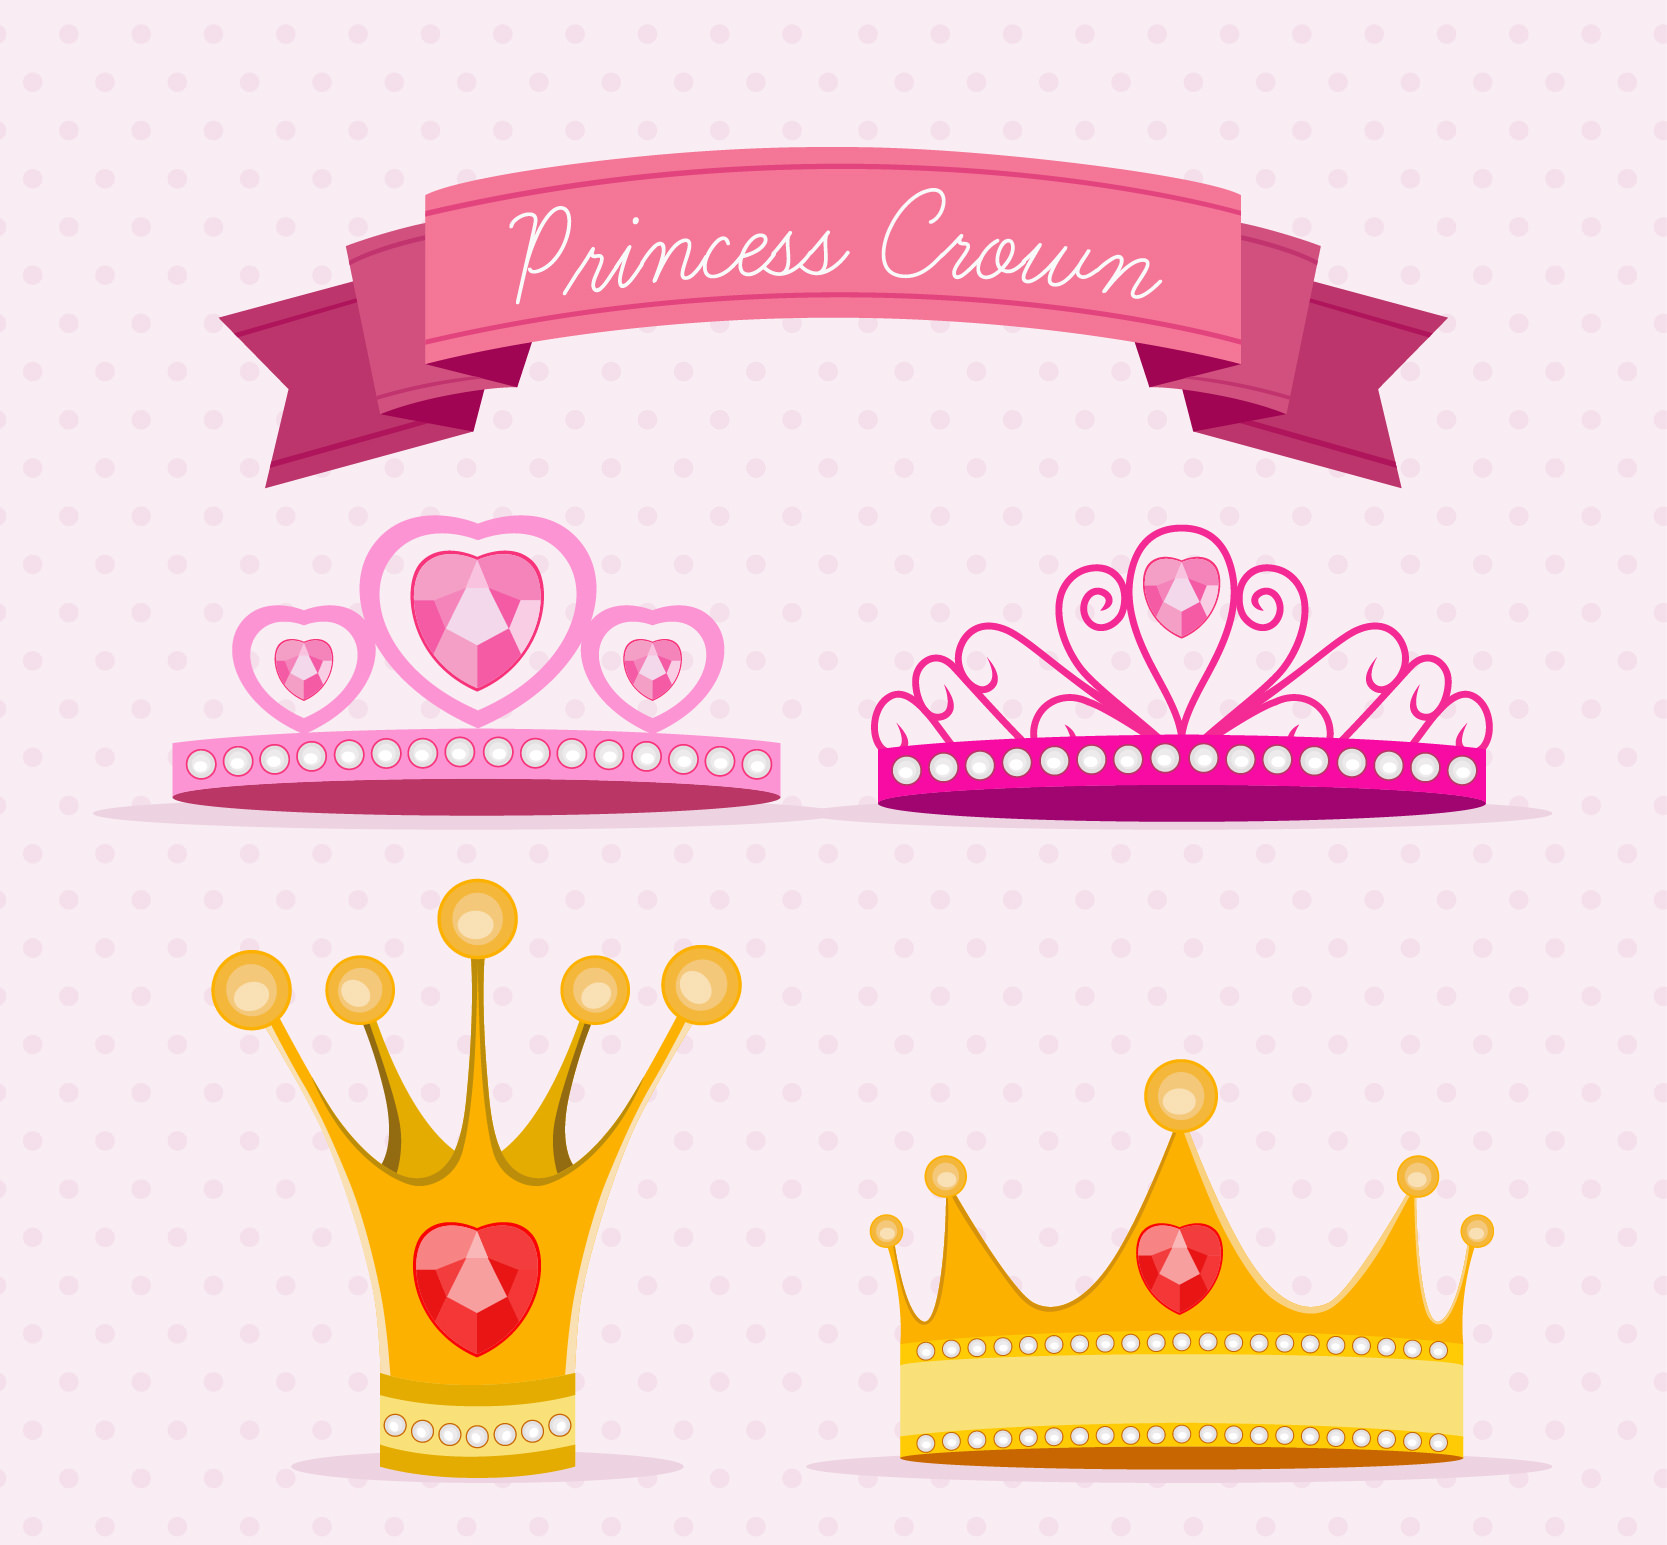 Princess Crowns Vector